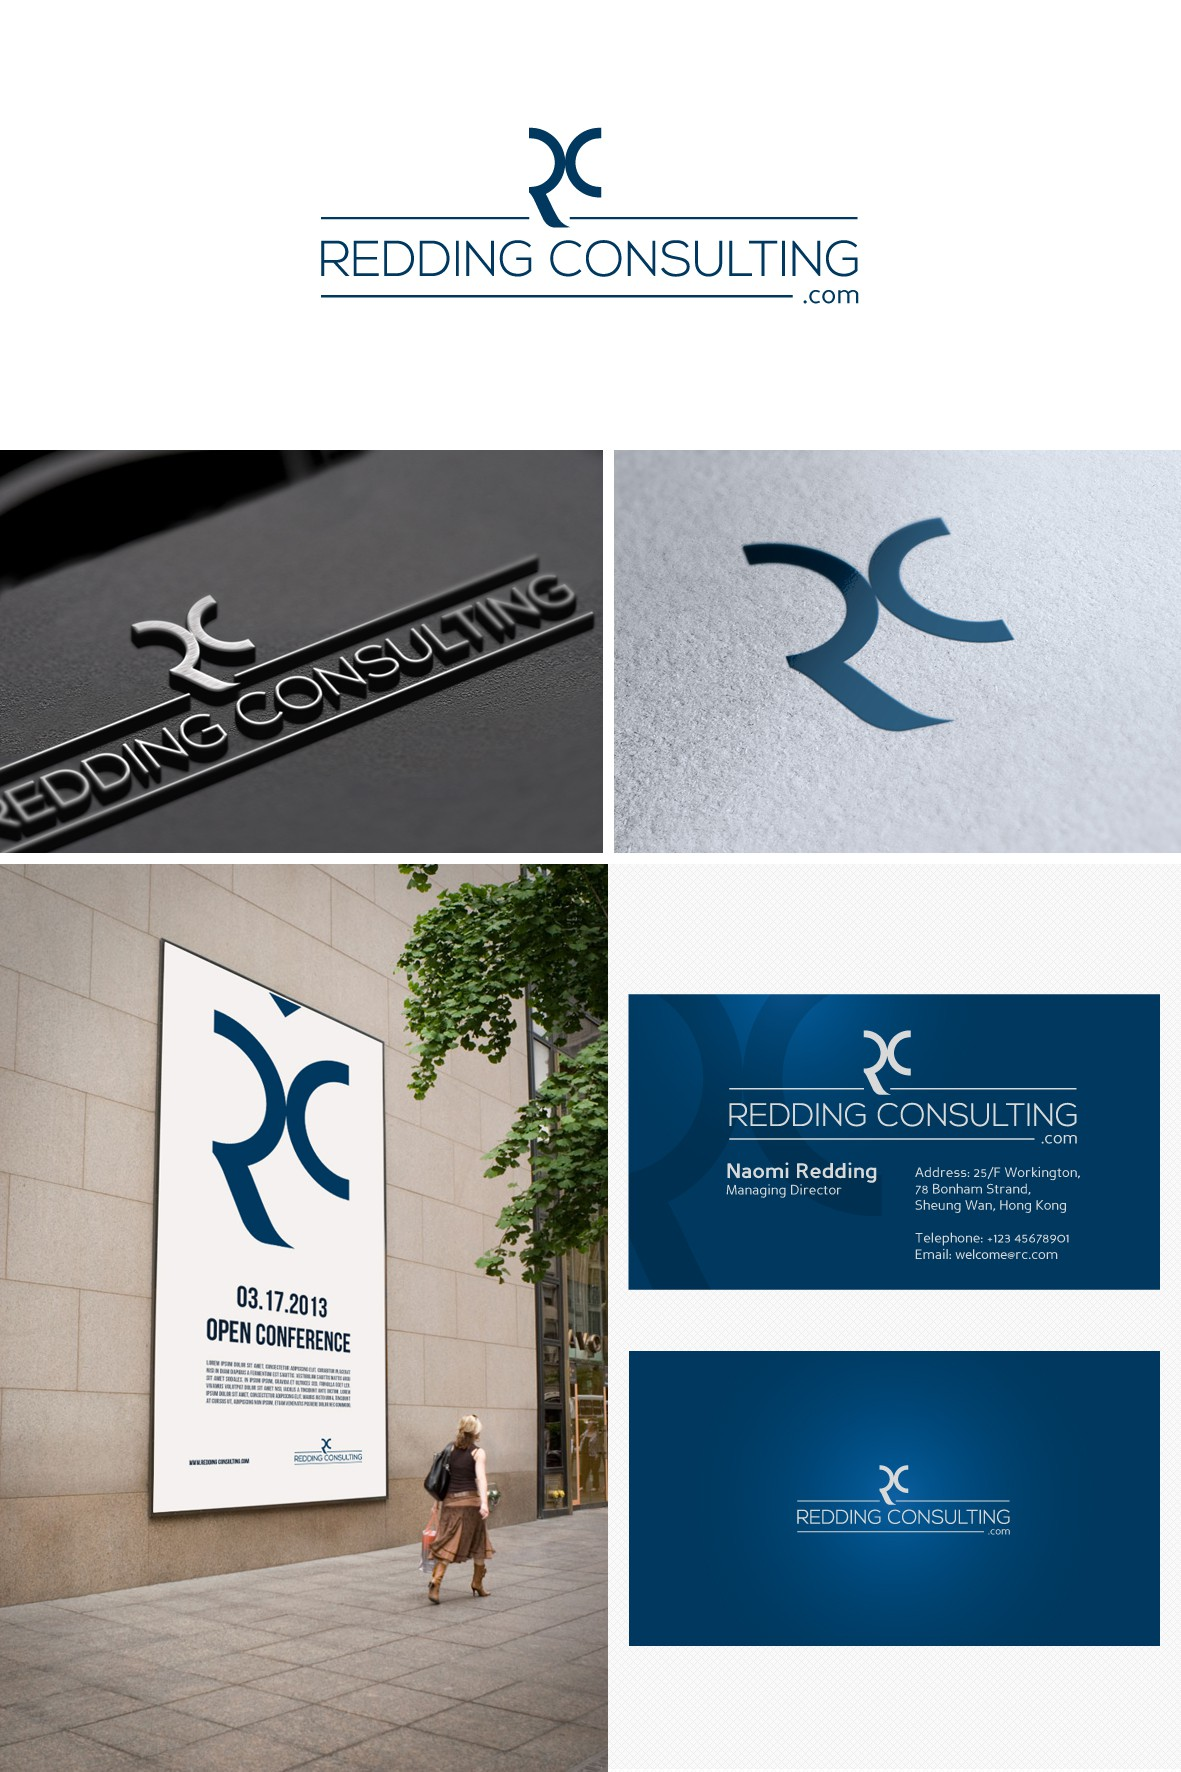 New logo and business card wanted for Redding Consulting